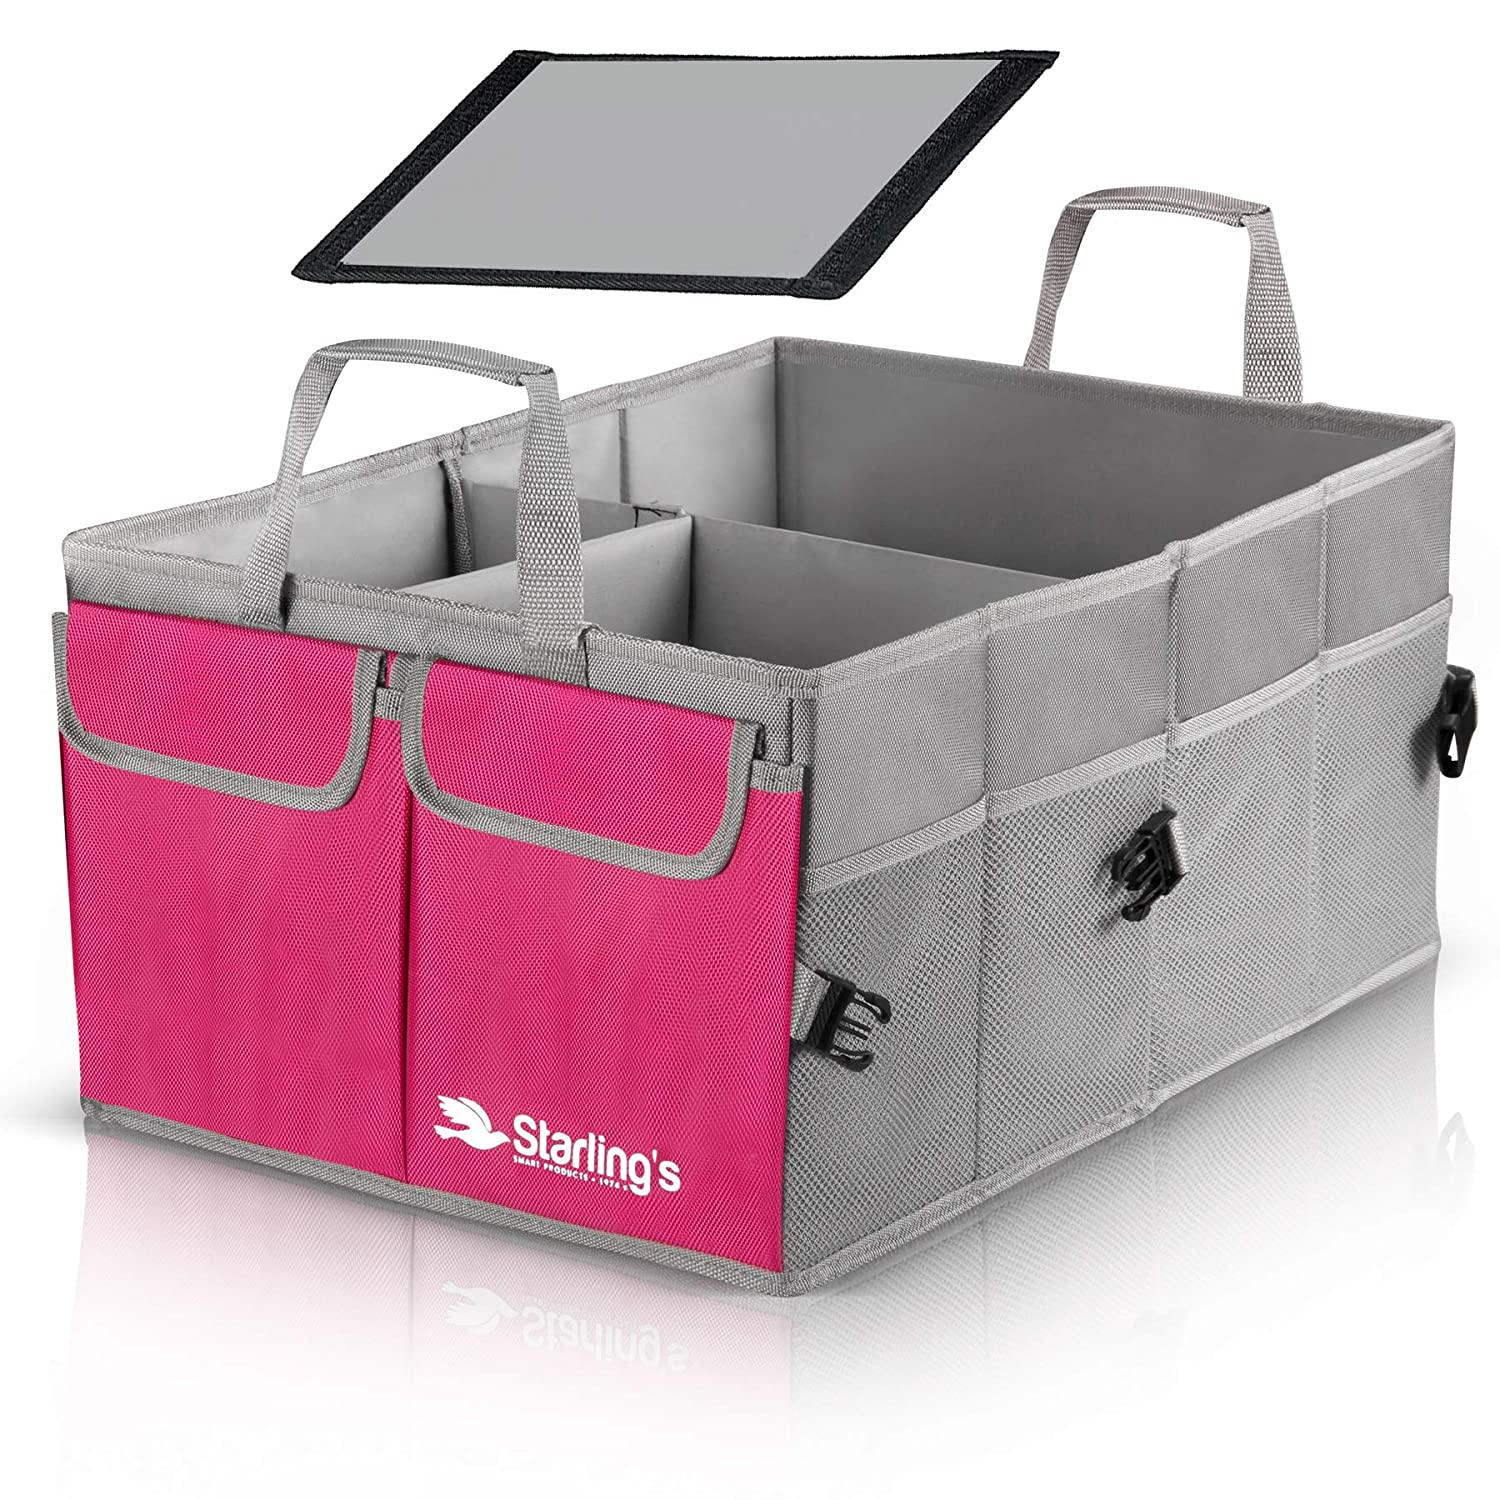 Car Trunk Organizer by Starling' s-Pink: Super Strong, Foldable Storage Box for Auto, Truck, SUV - Nonslip/Waterproof 3 Layers Bottom W/Design Box Starling' s